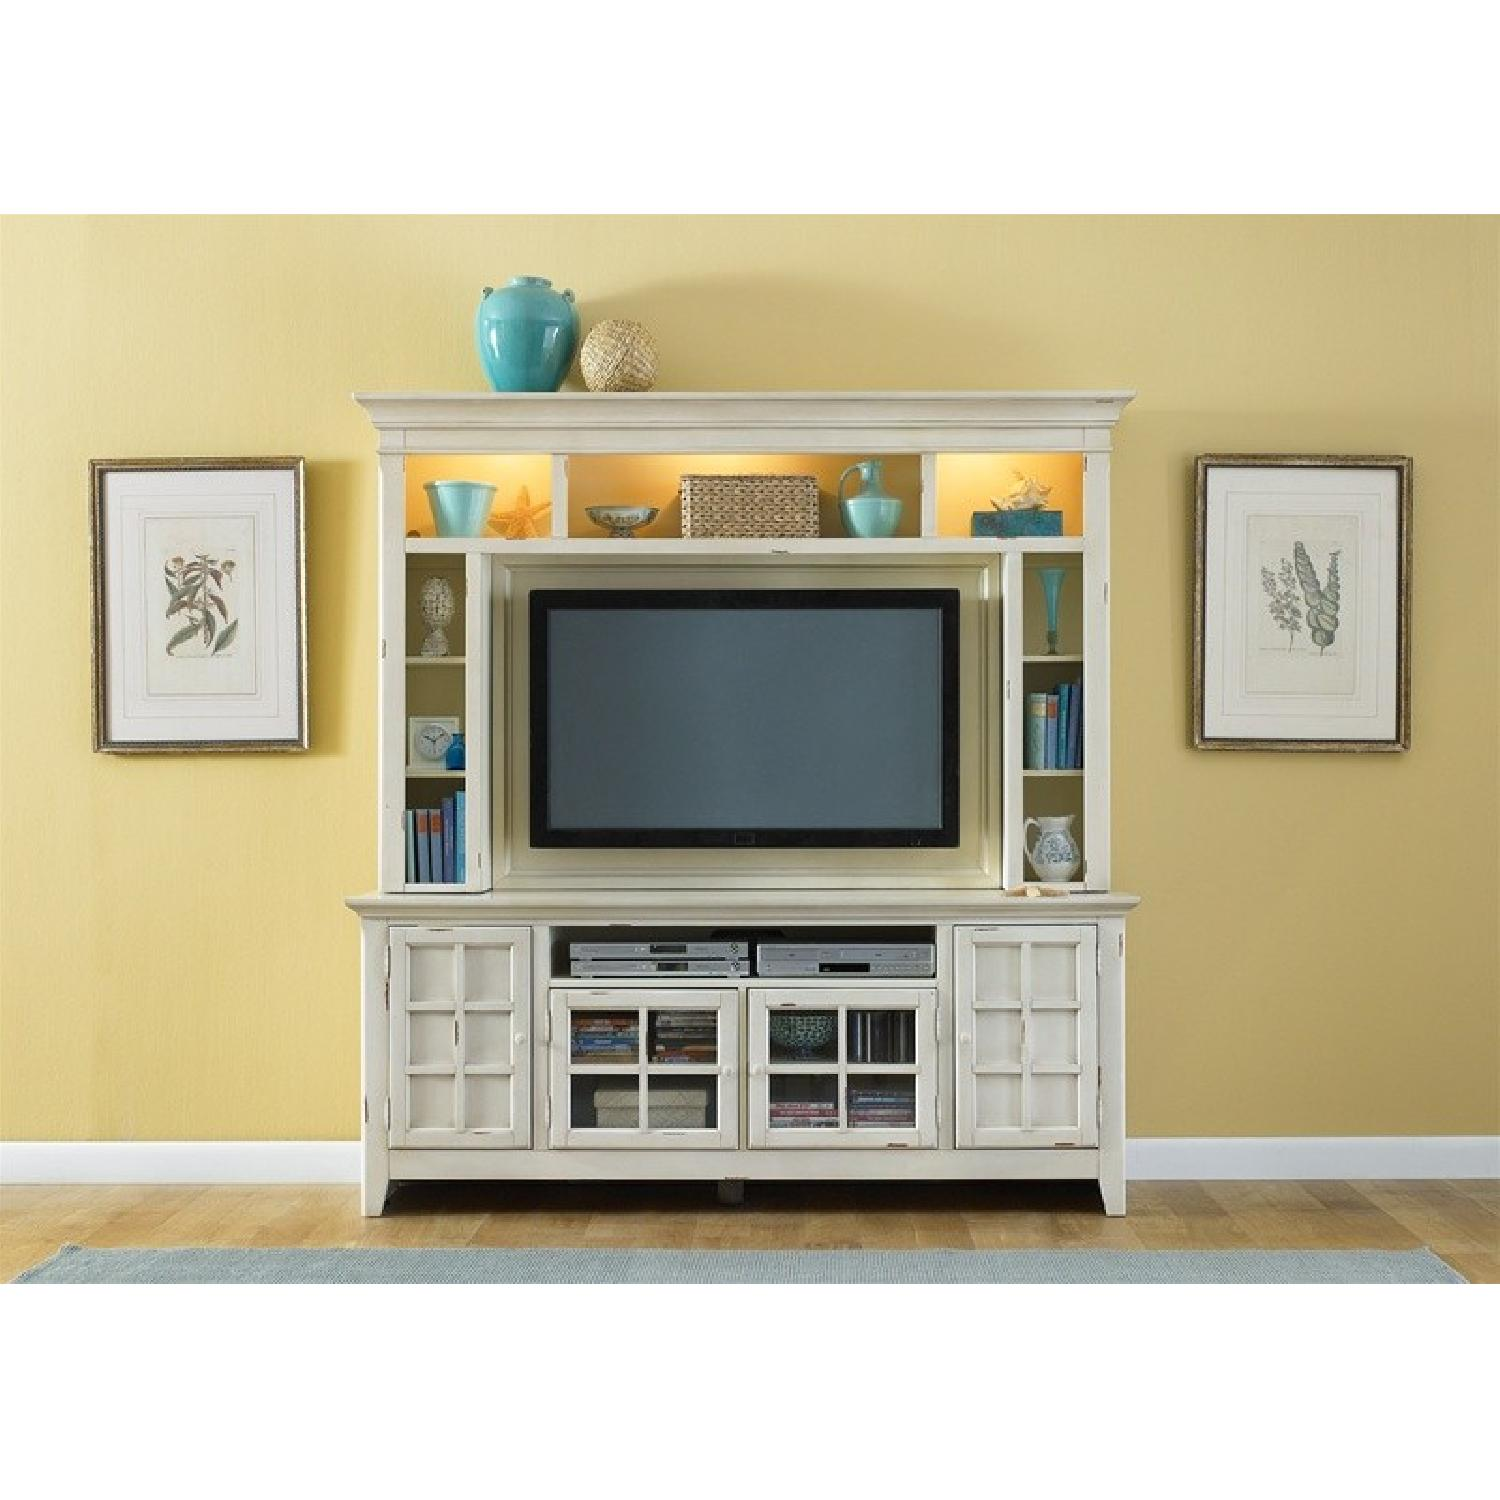 Liberty Furniture Distressed Off-White Entertainment Unit - image-6